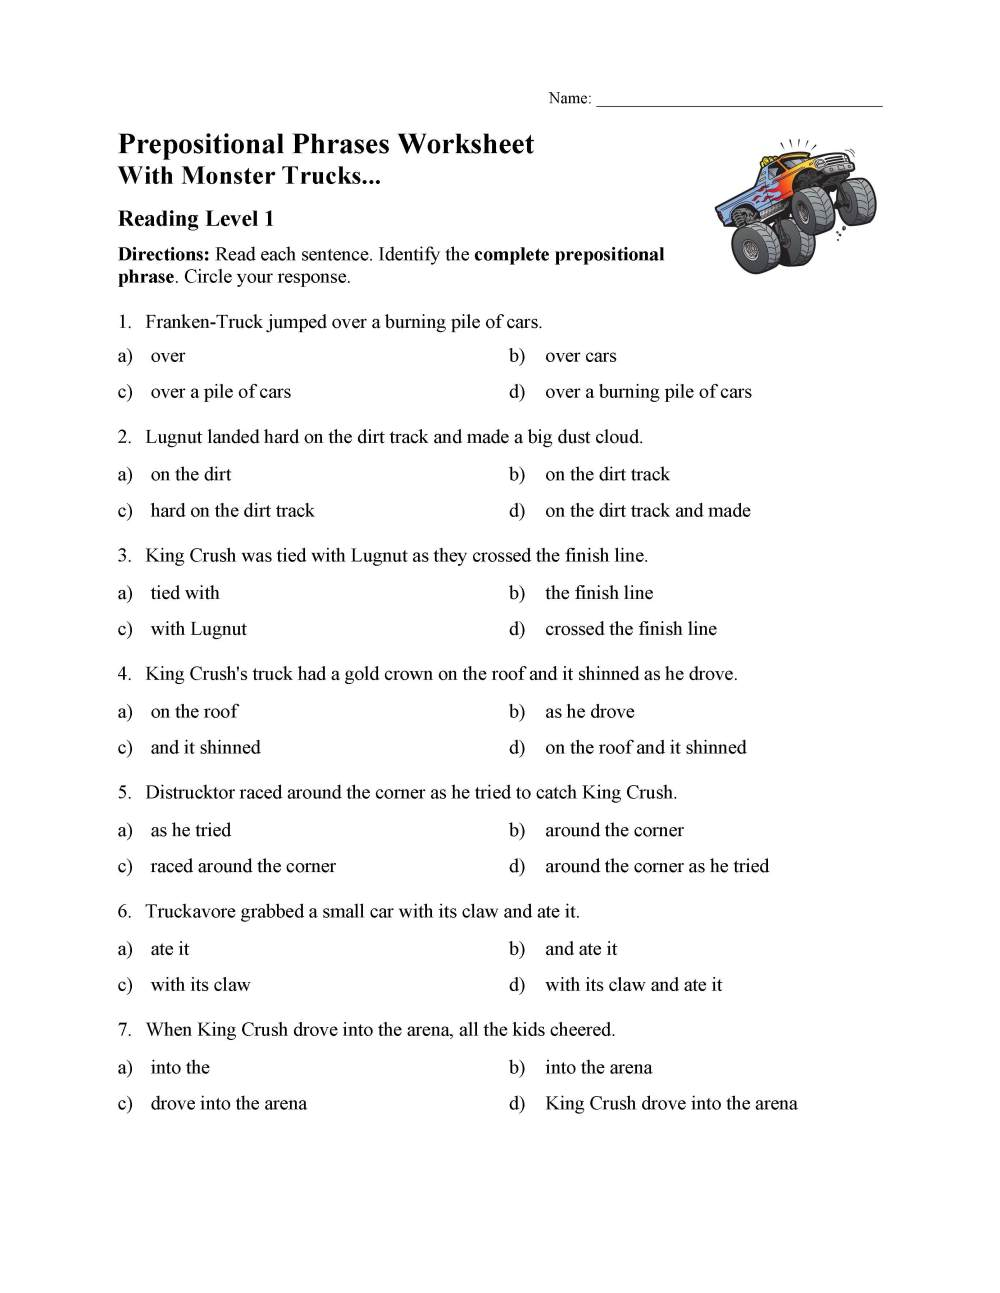 medium resolution of Prepositional Phrases Worksheet 1 - Reading Level 1   Preview